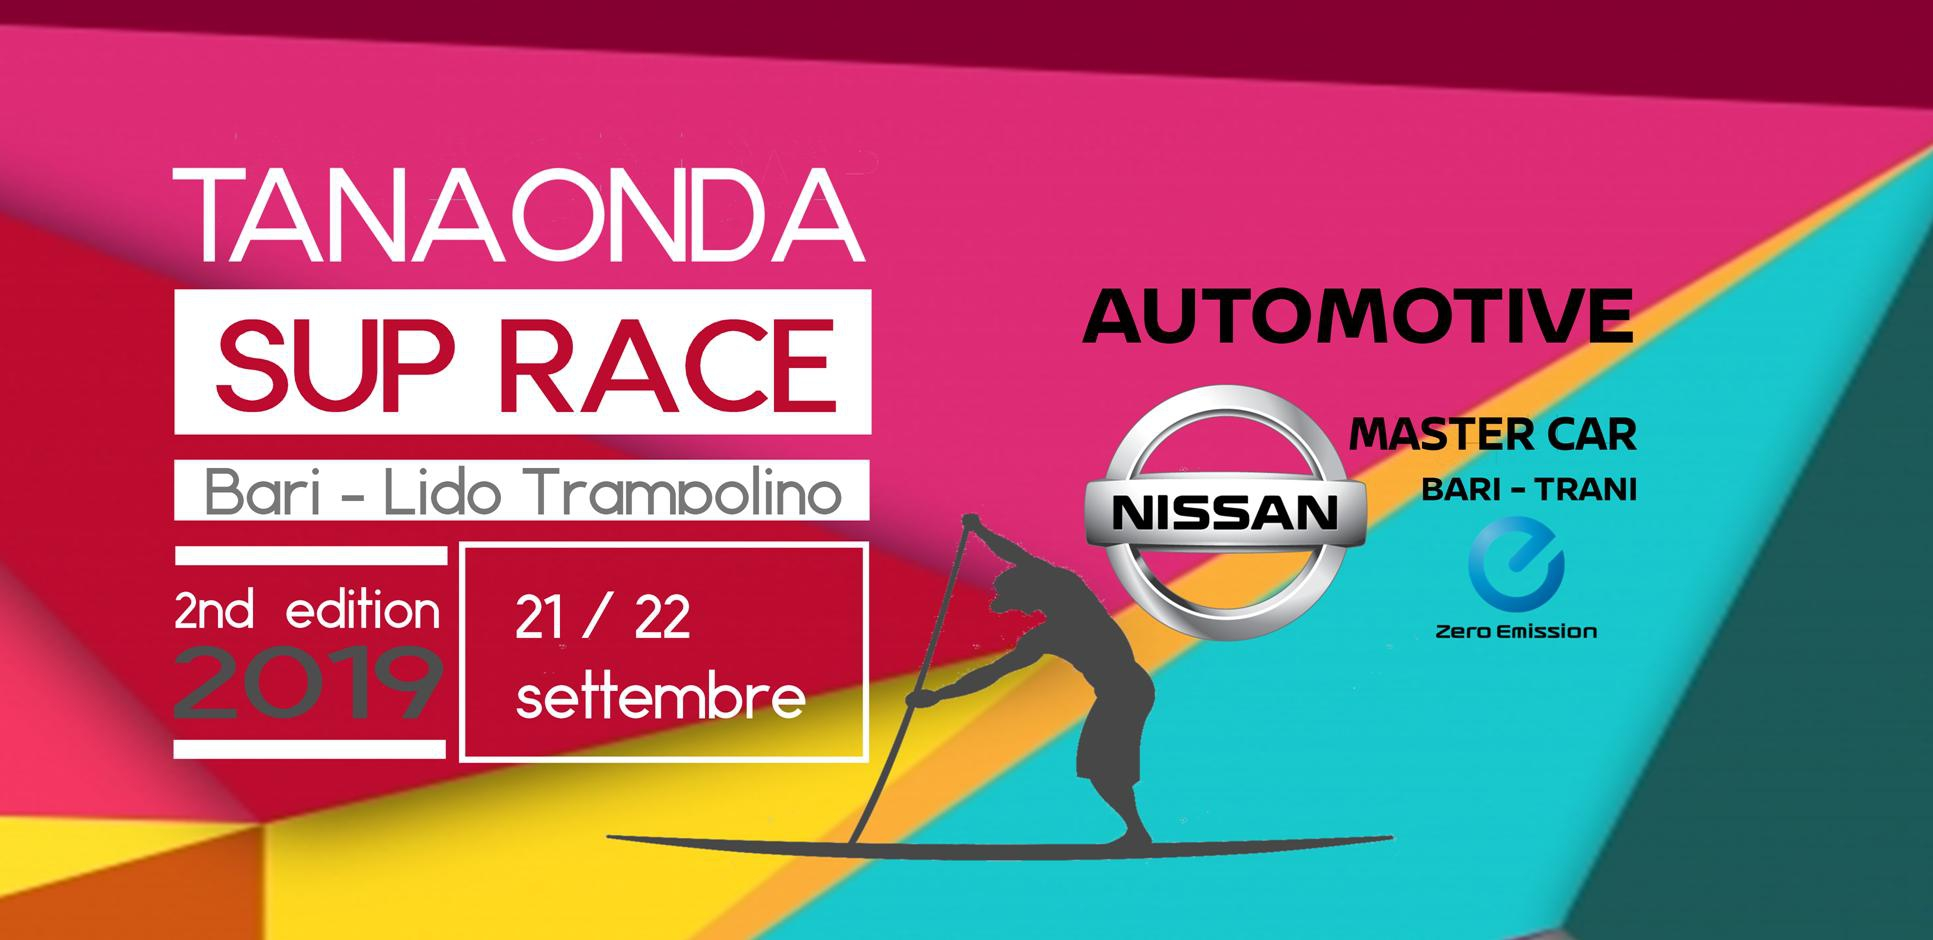 Nissan Master Car Bari - Trani Official Car della Tanaonda SUP Race 2019